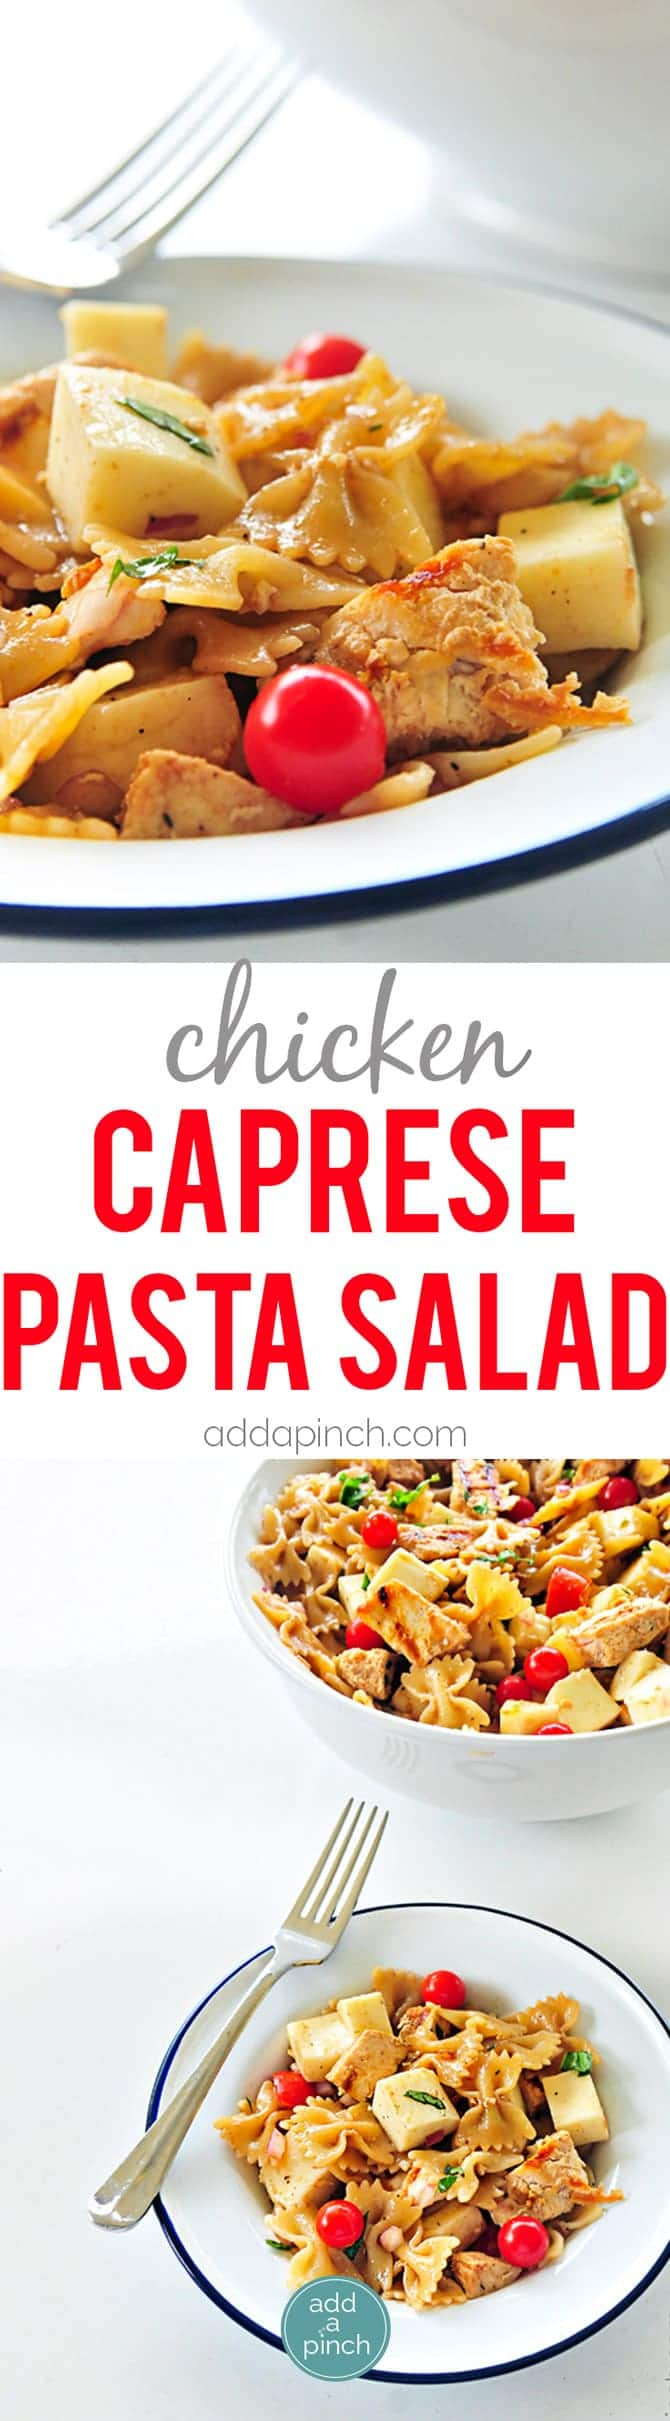 Chicken Caprese Pasta Salad Recipe - this pasta salad recipe is delicious served hot or cold! // addapinch.com